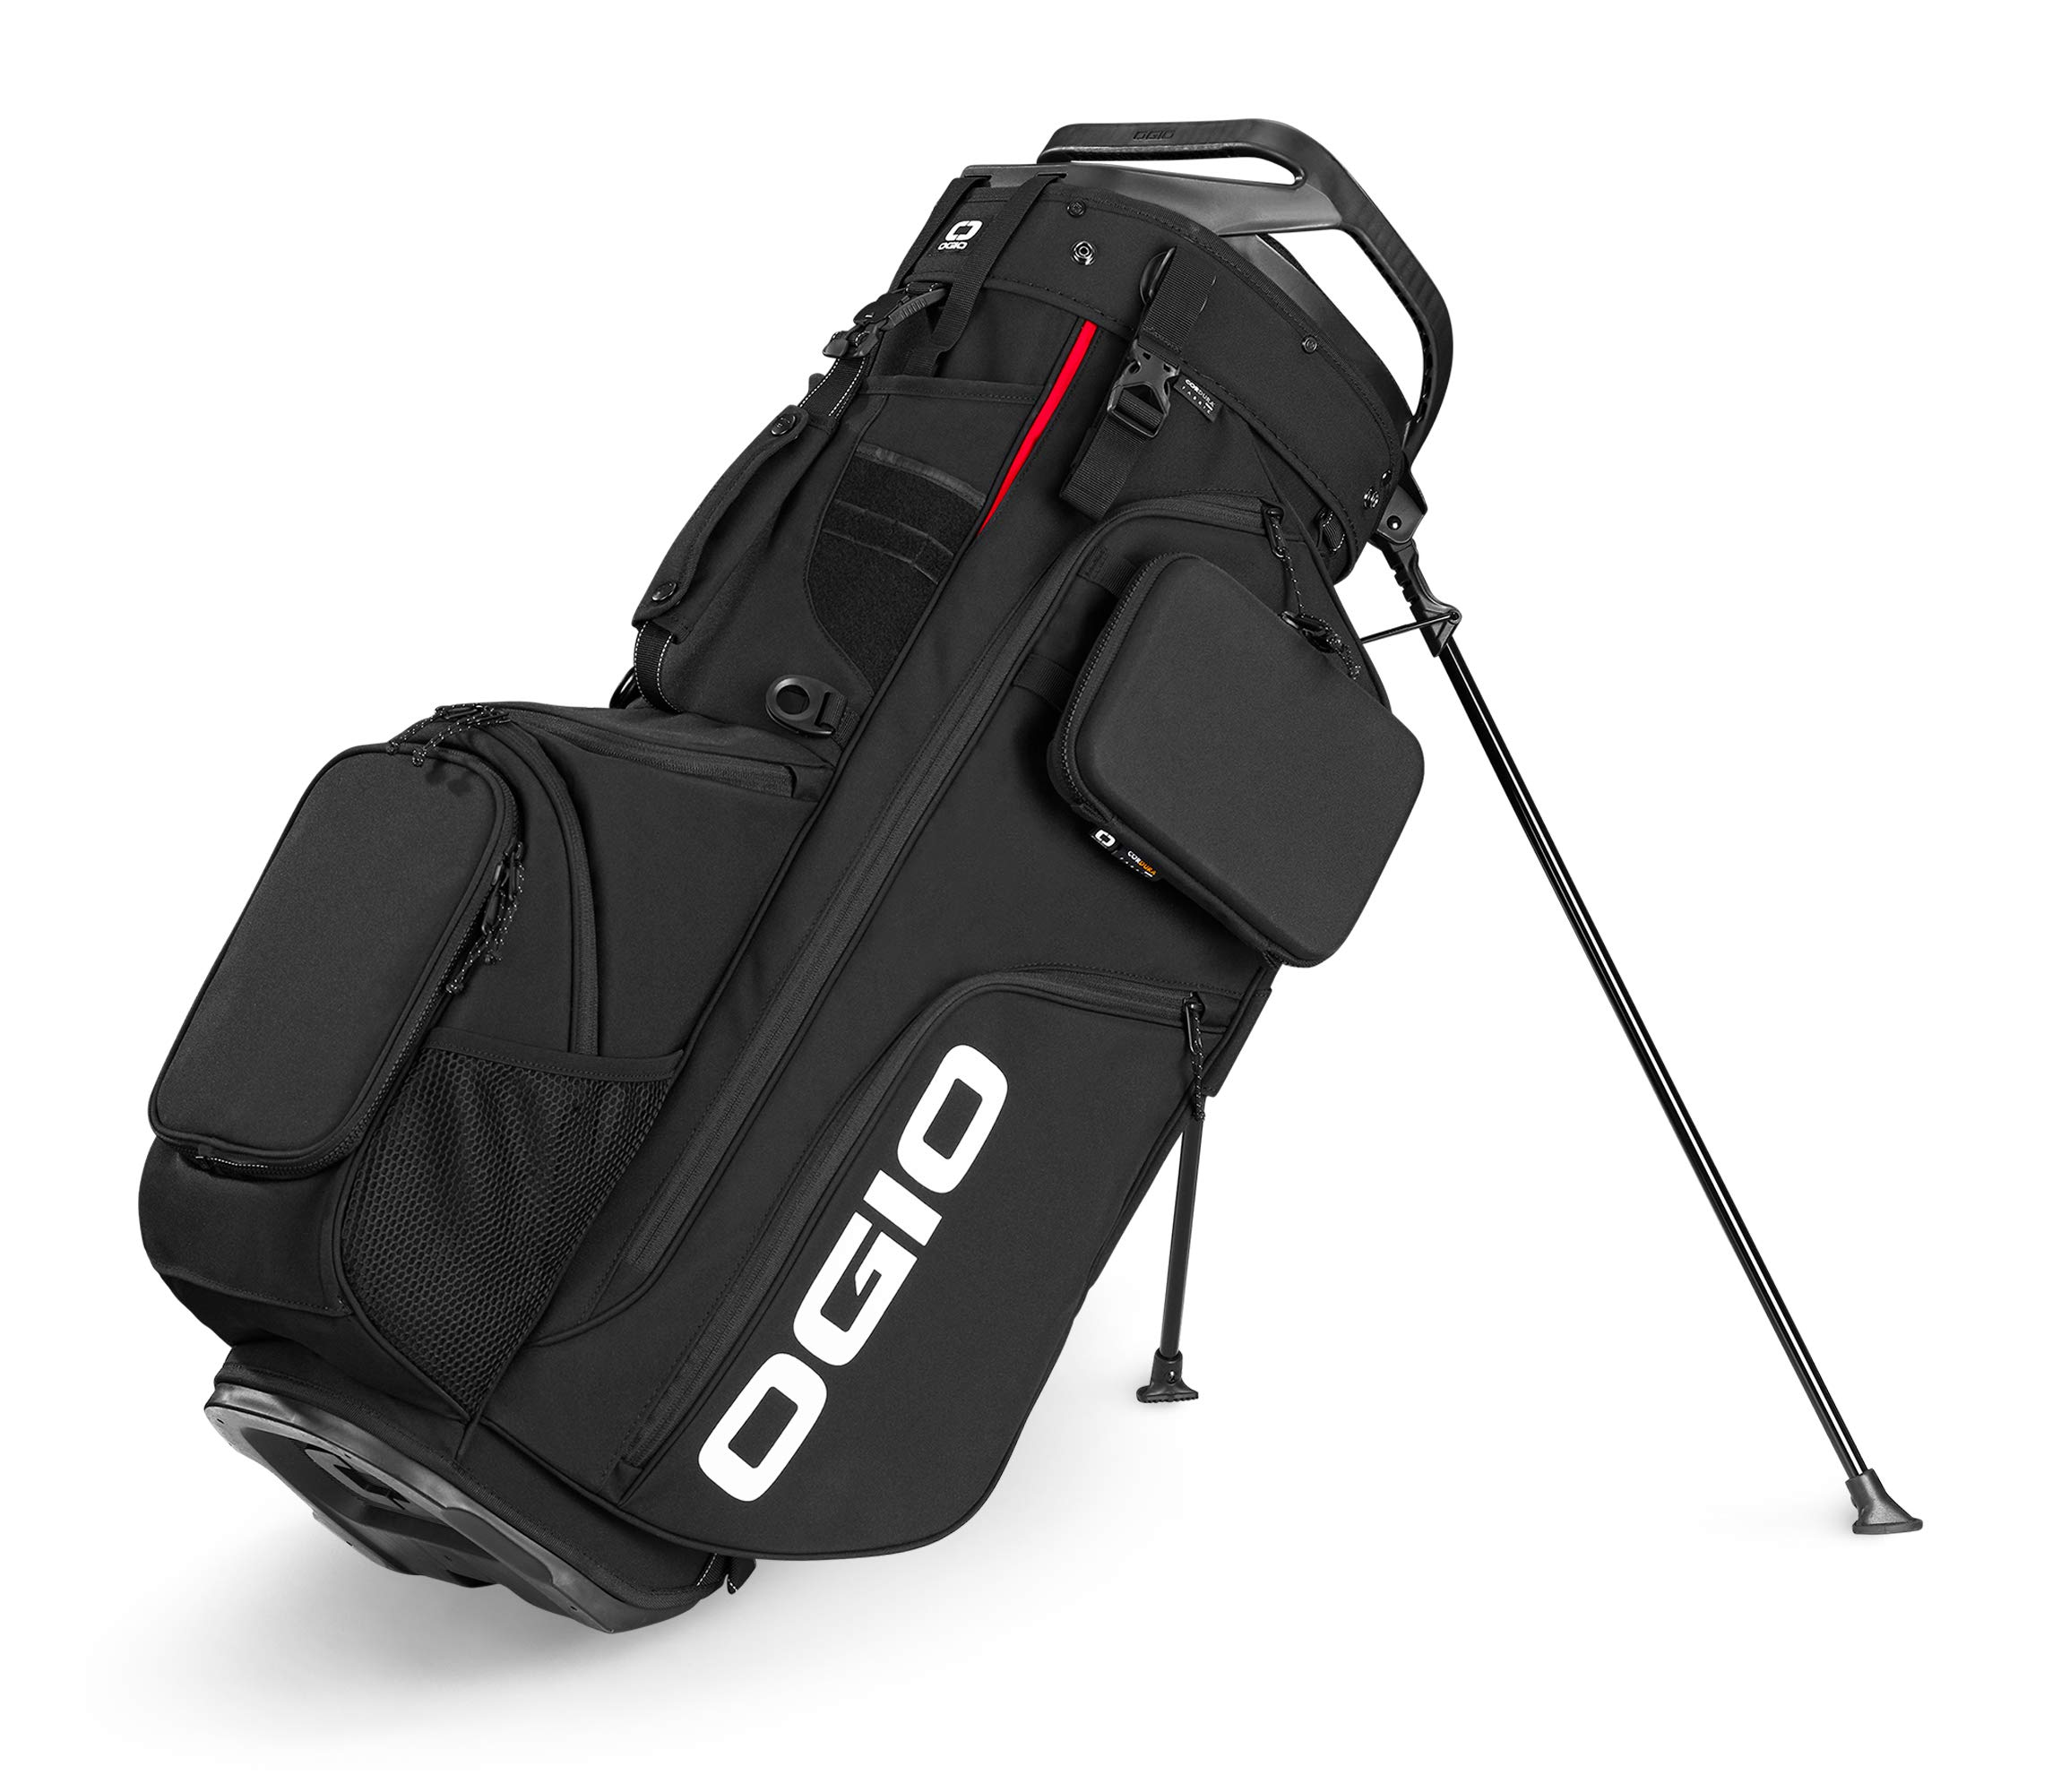 OGIO ALPHA Convoy 514 Golf Stand Bag